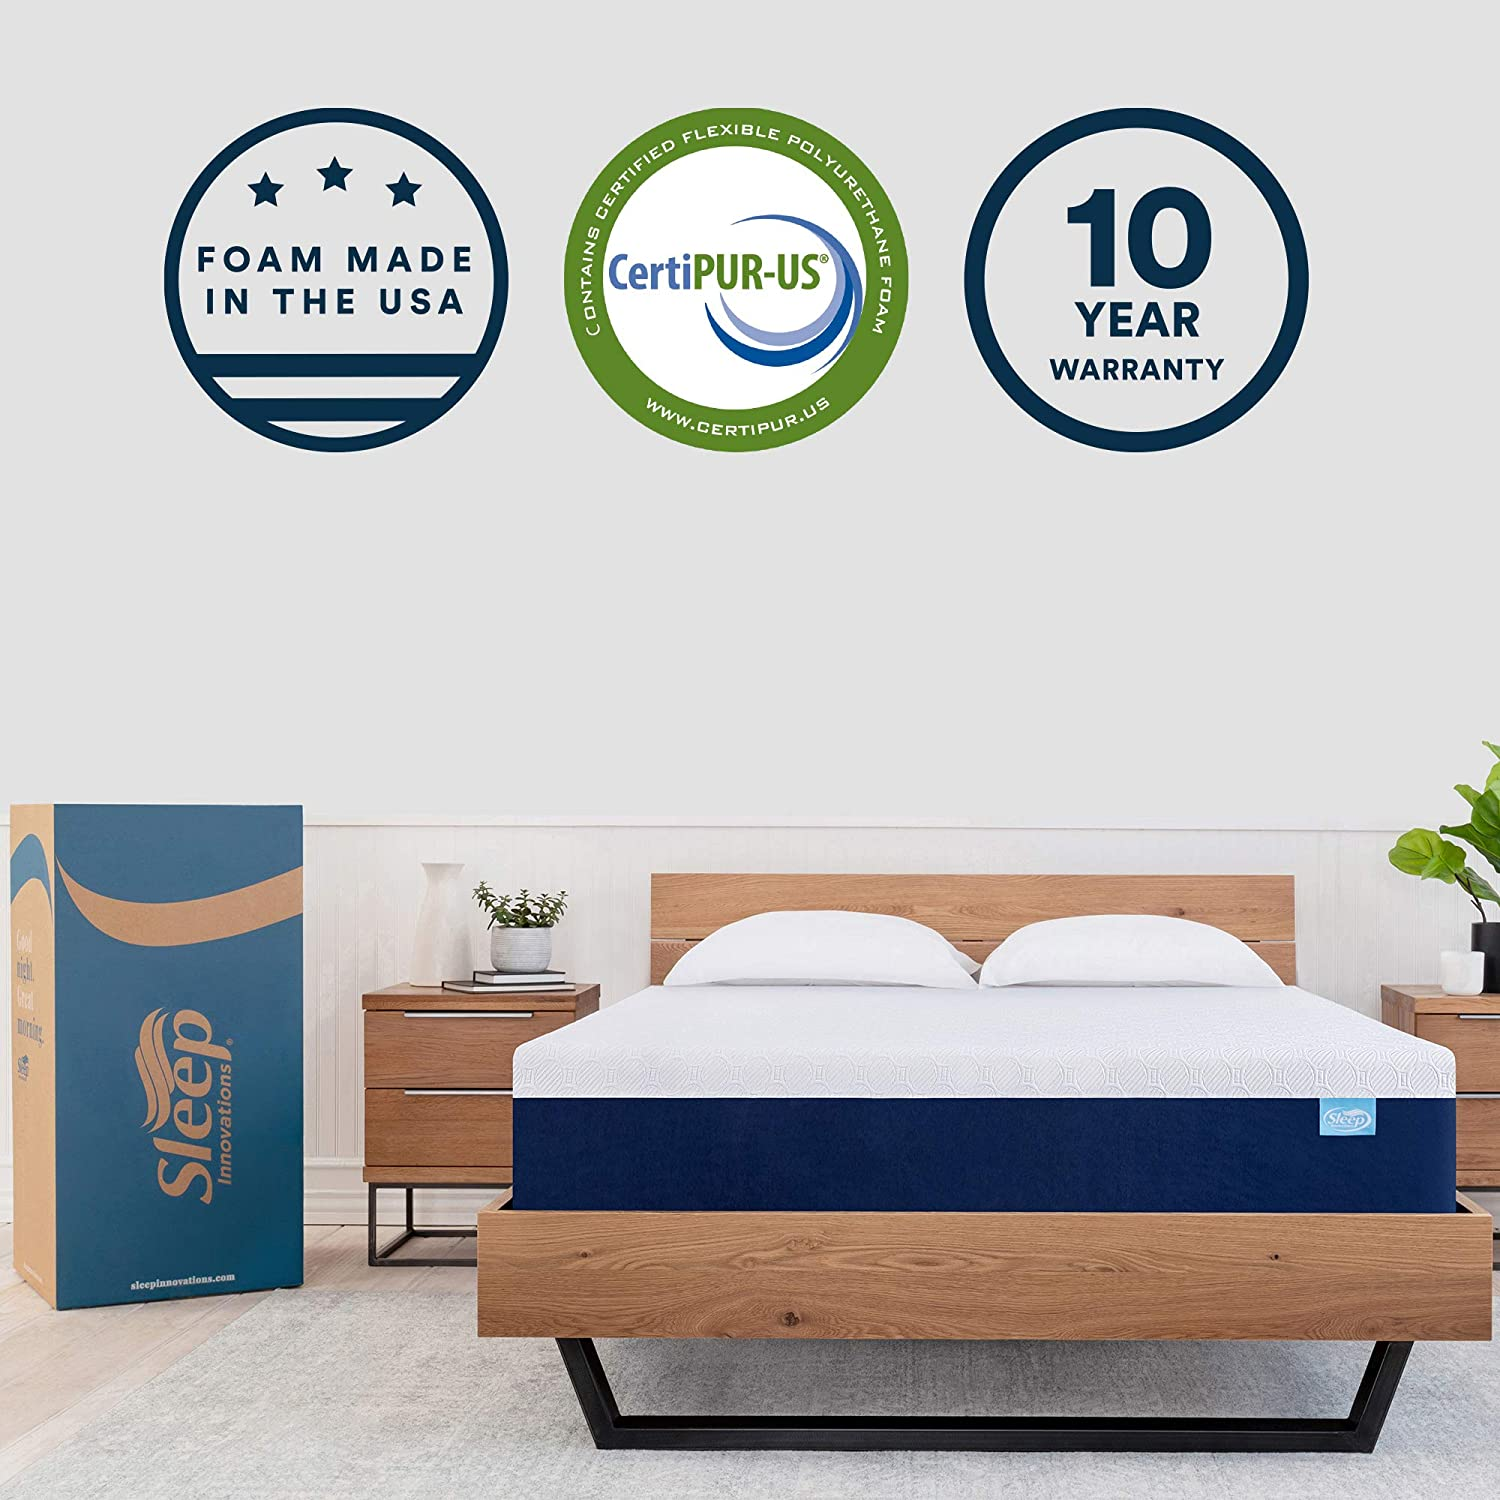 best king size mattress - the Sleep Innovations Shiloh Memory Foam Mattress